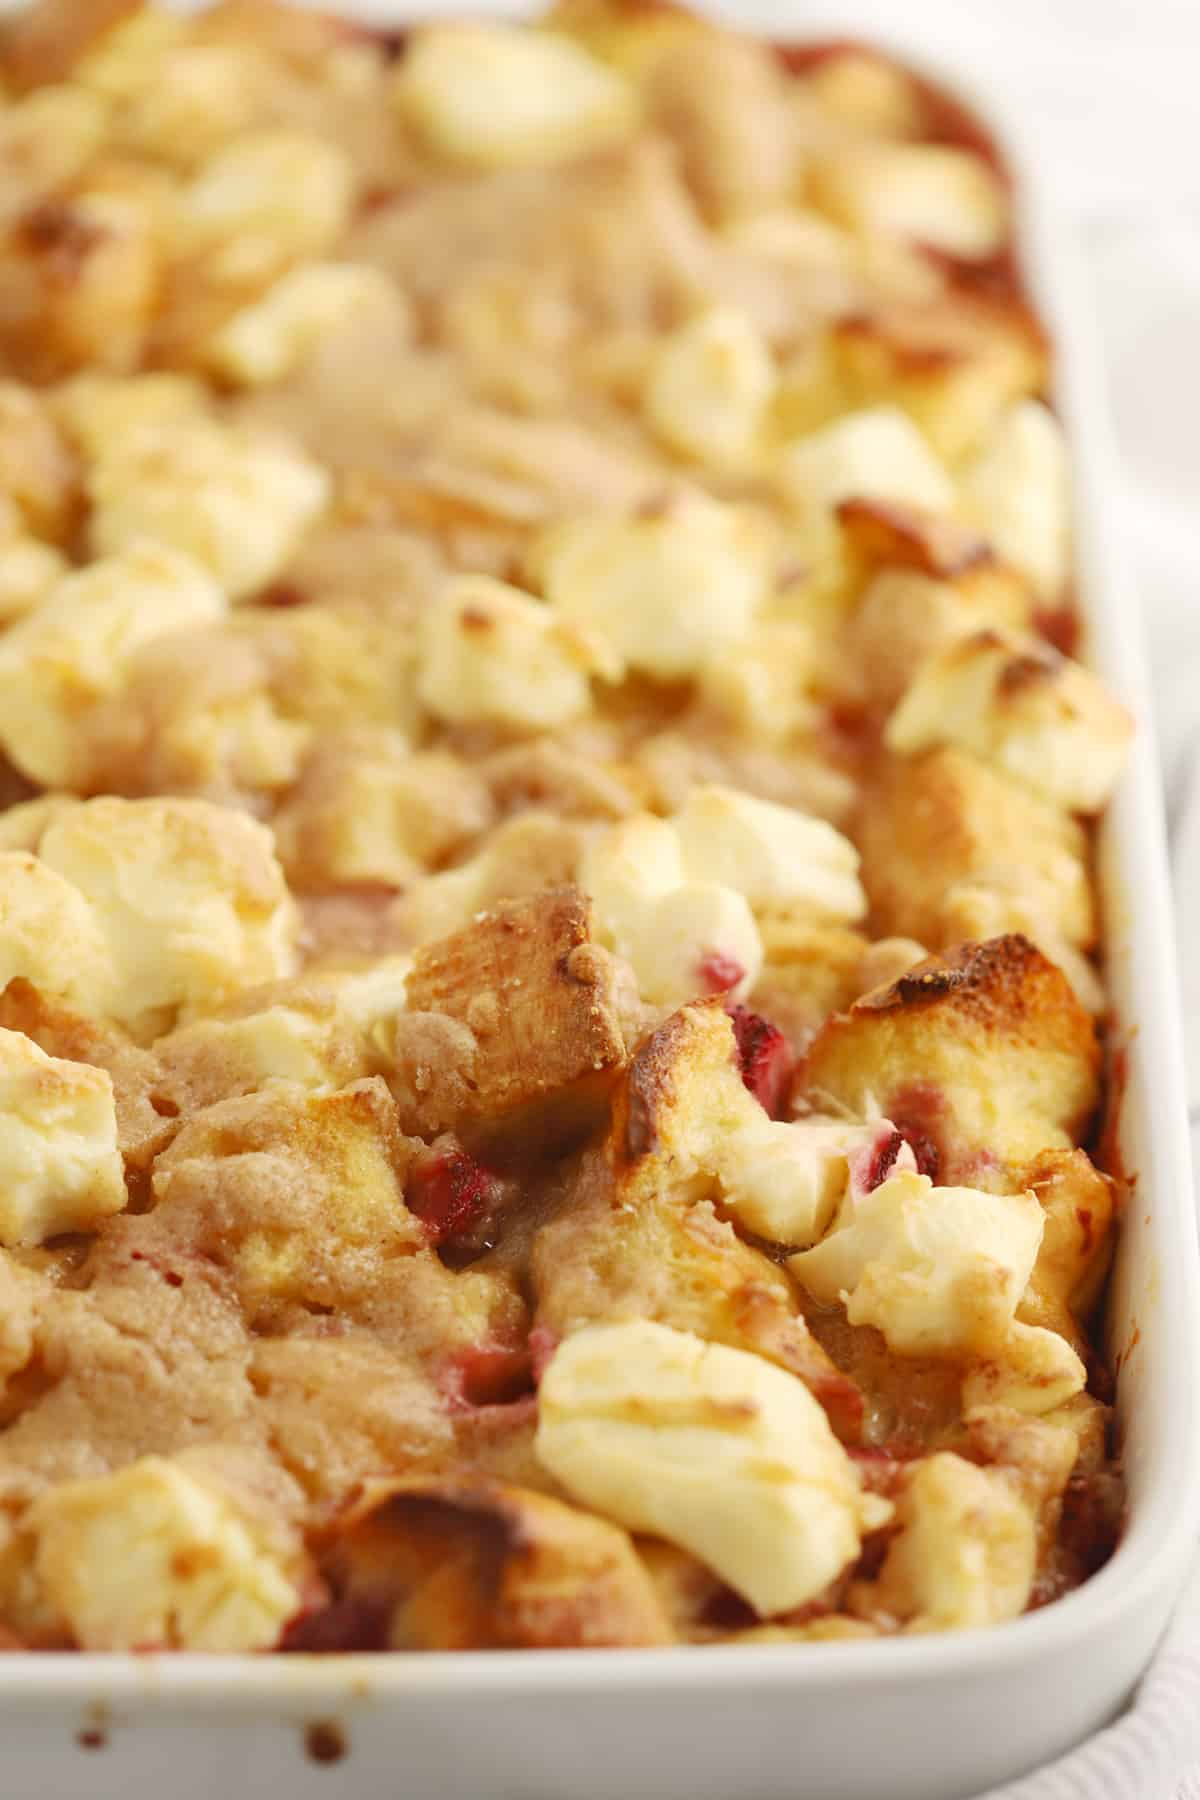 A baking dish with freshly baked French toast casserole.